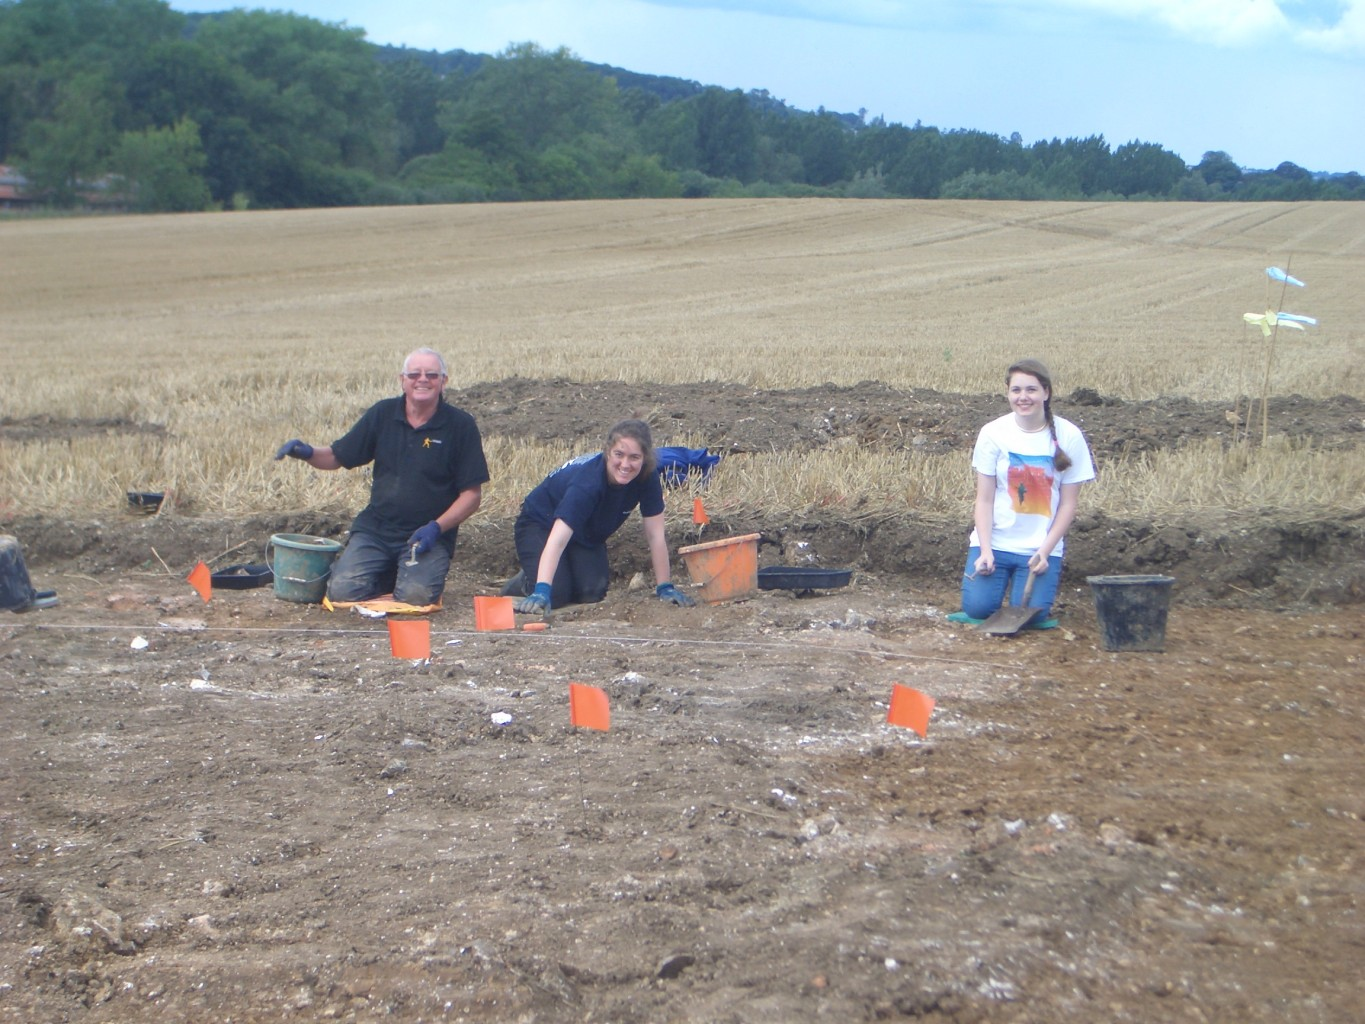 Jim, Eleanor and Freya start to unearth a wonderful find - another building on this amazing site!